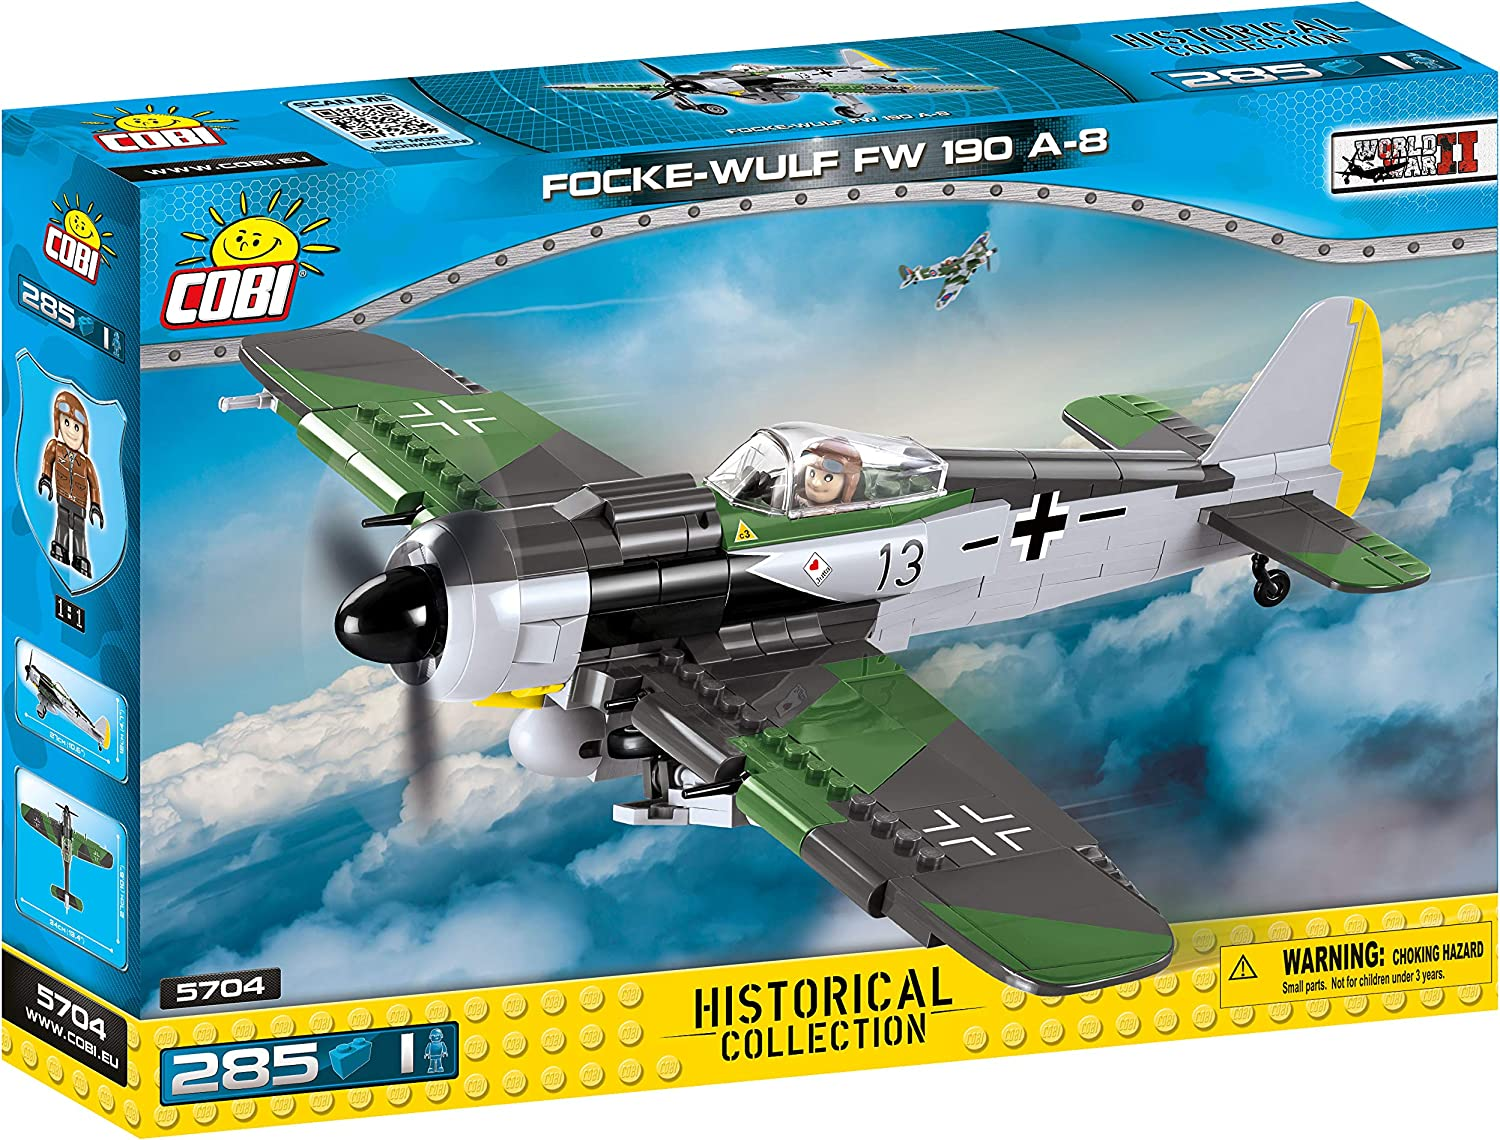 COBI Historical Collection Focke-Wulf FW 190 A-8 Plane, (Model: 5704)